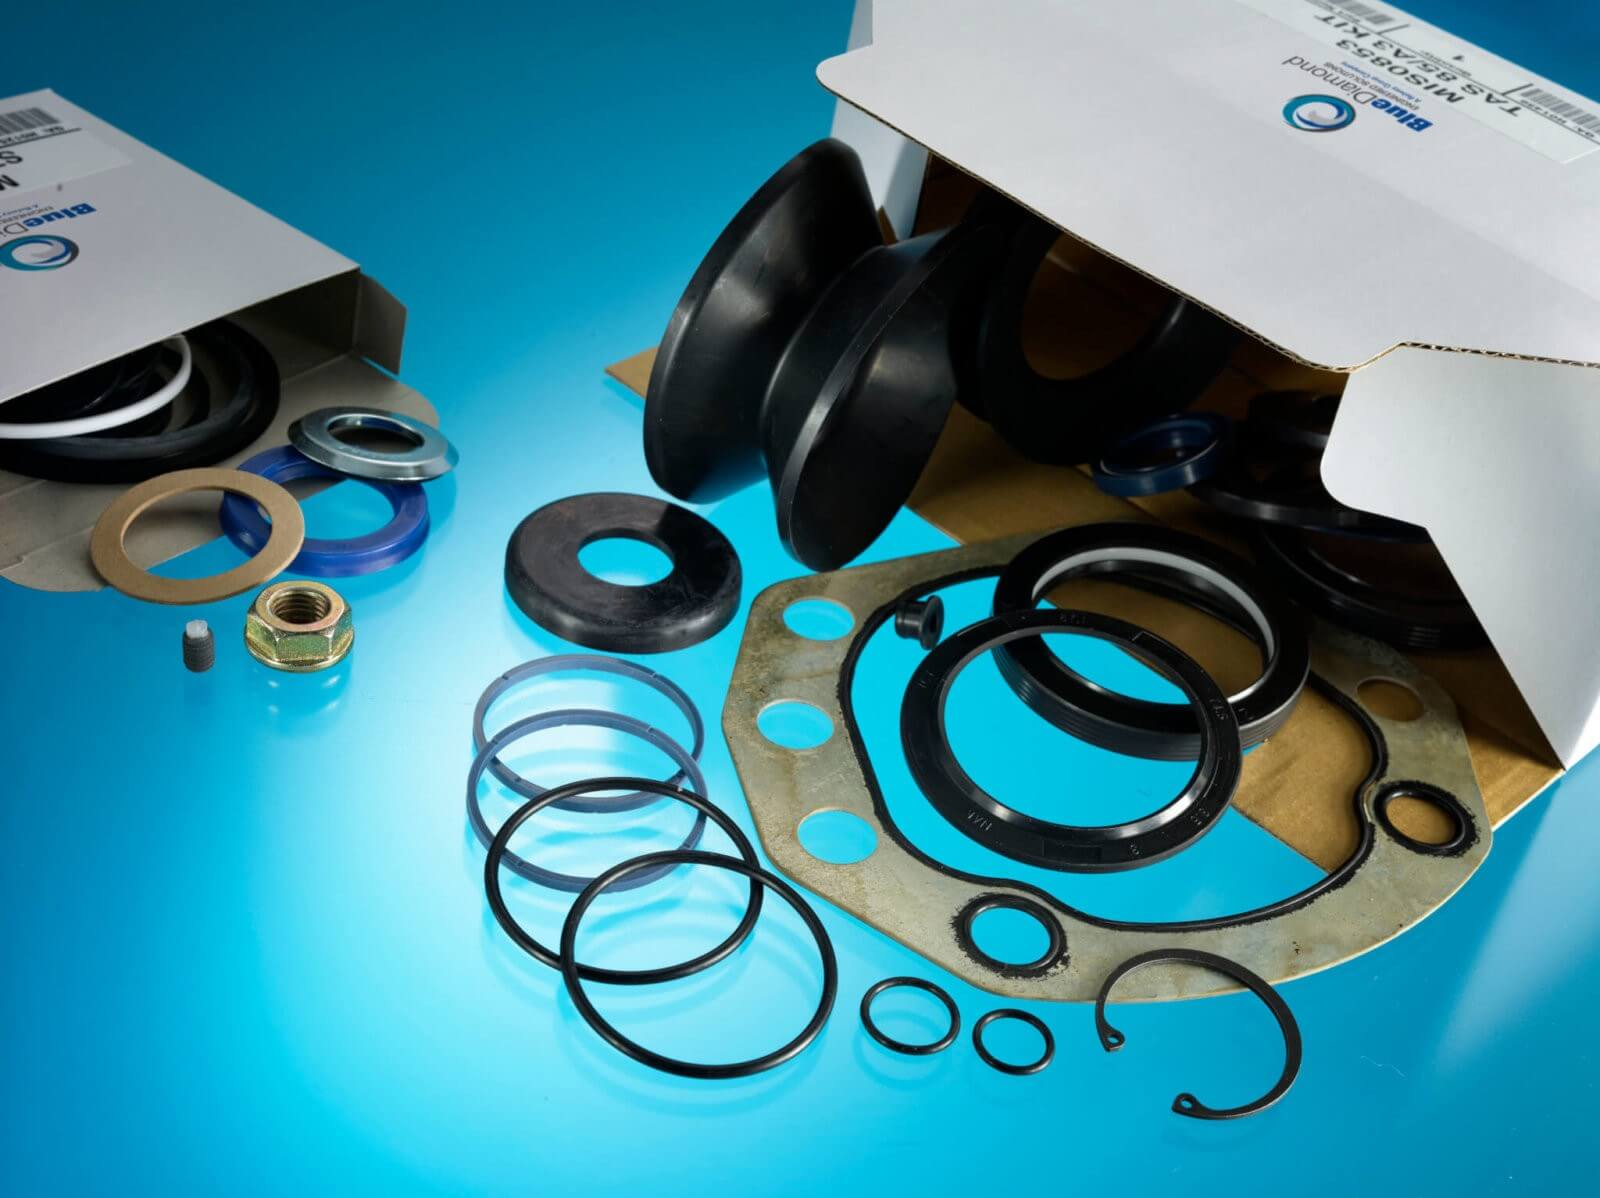 Automotive Parts Multi component kit. Circlips, O-Rings, Nuts and Bolts in a component kit box